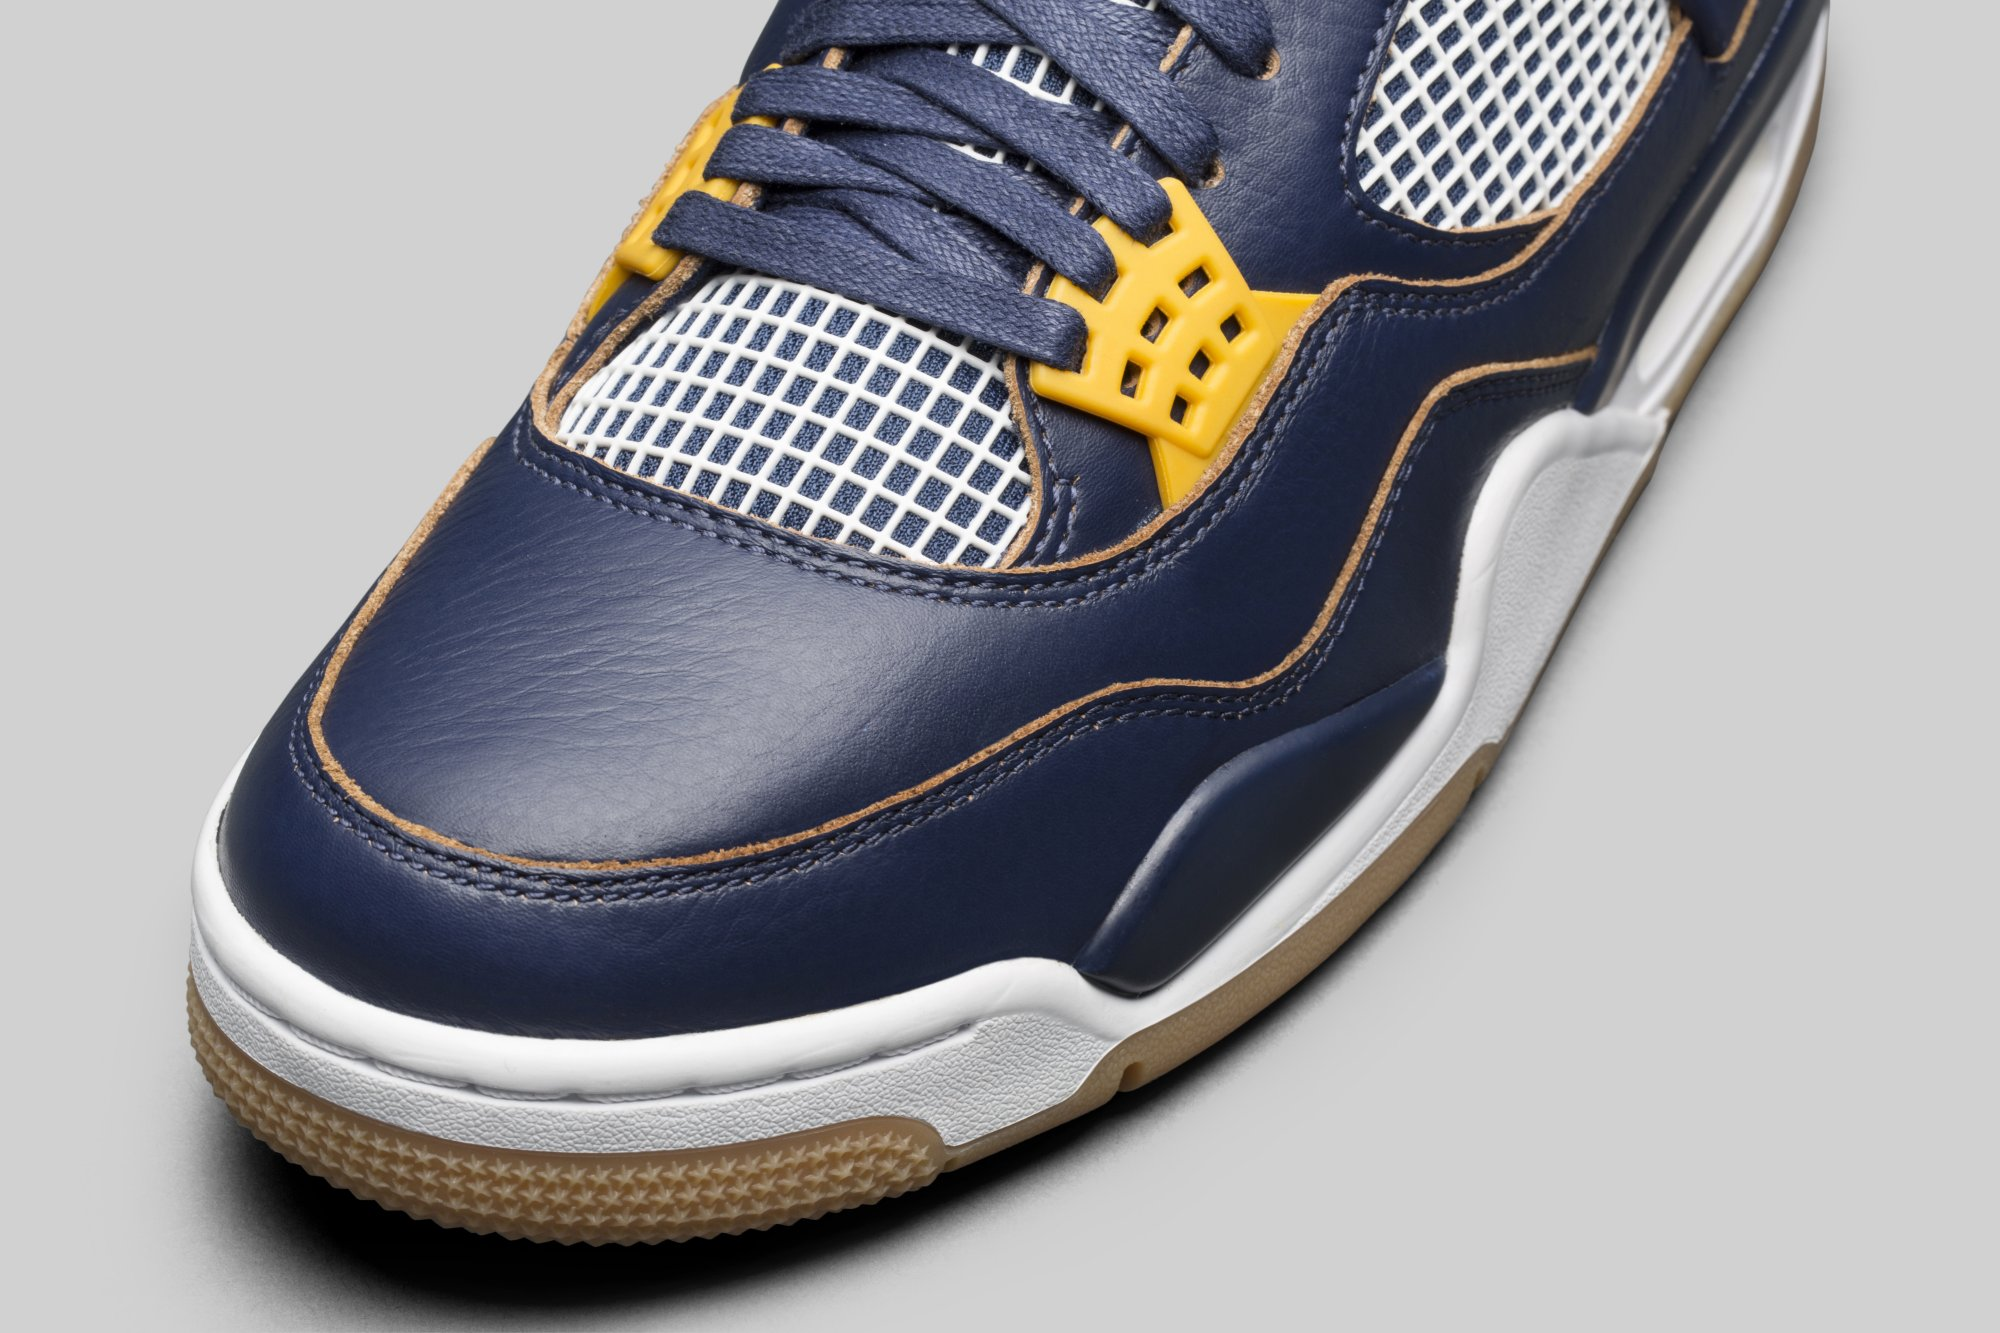 """the legacy of air jordans A strap adds for a nice fashionable touch, while resting atop an air jordan 3 designed sole air jordan legacy 312 storm blue release date look for the air jordan legacy 312 """"storm blue"""" to release on july 14th at select jordan brand retailers and nikecom the retail price tag is set at $160 usd."""